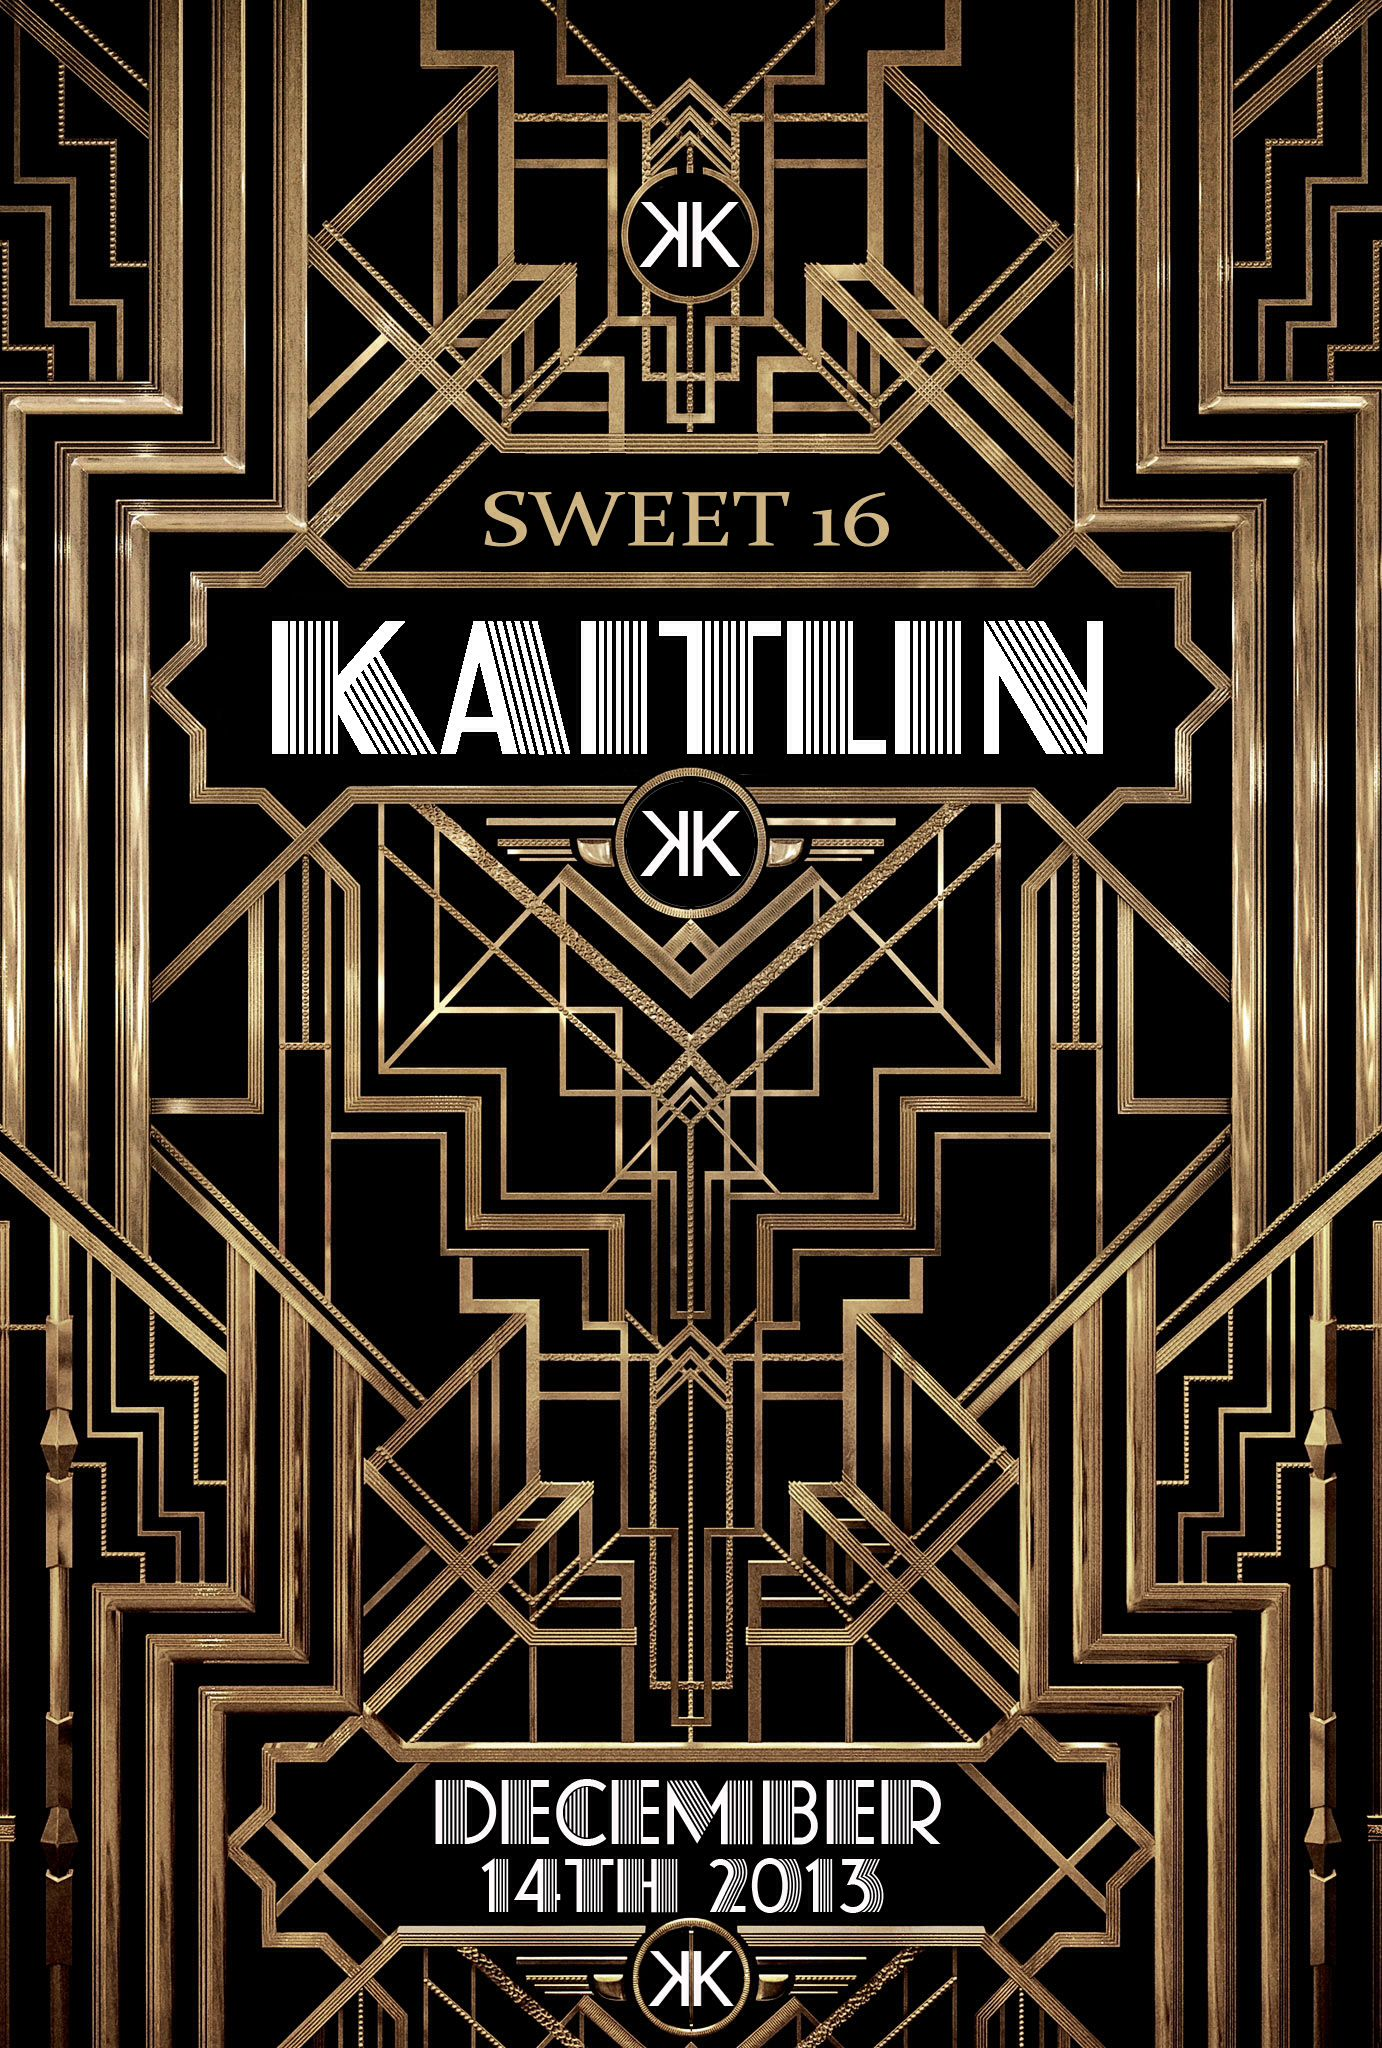 Kaitlin s Sweet 16 Great Gatsby Save The Date Invite